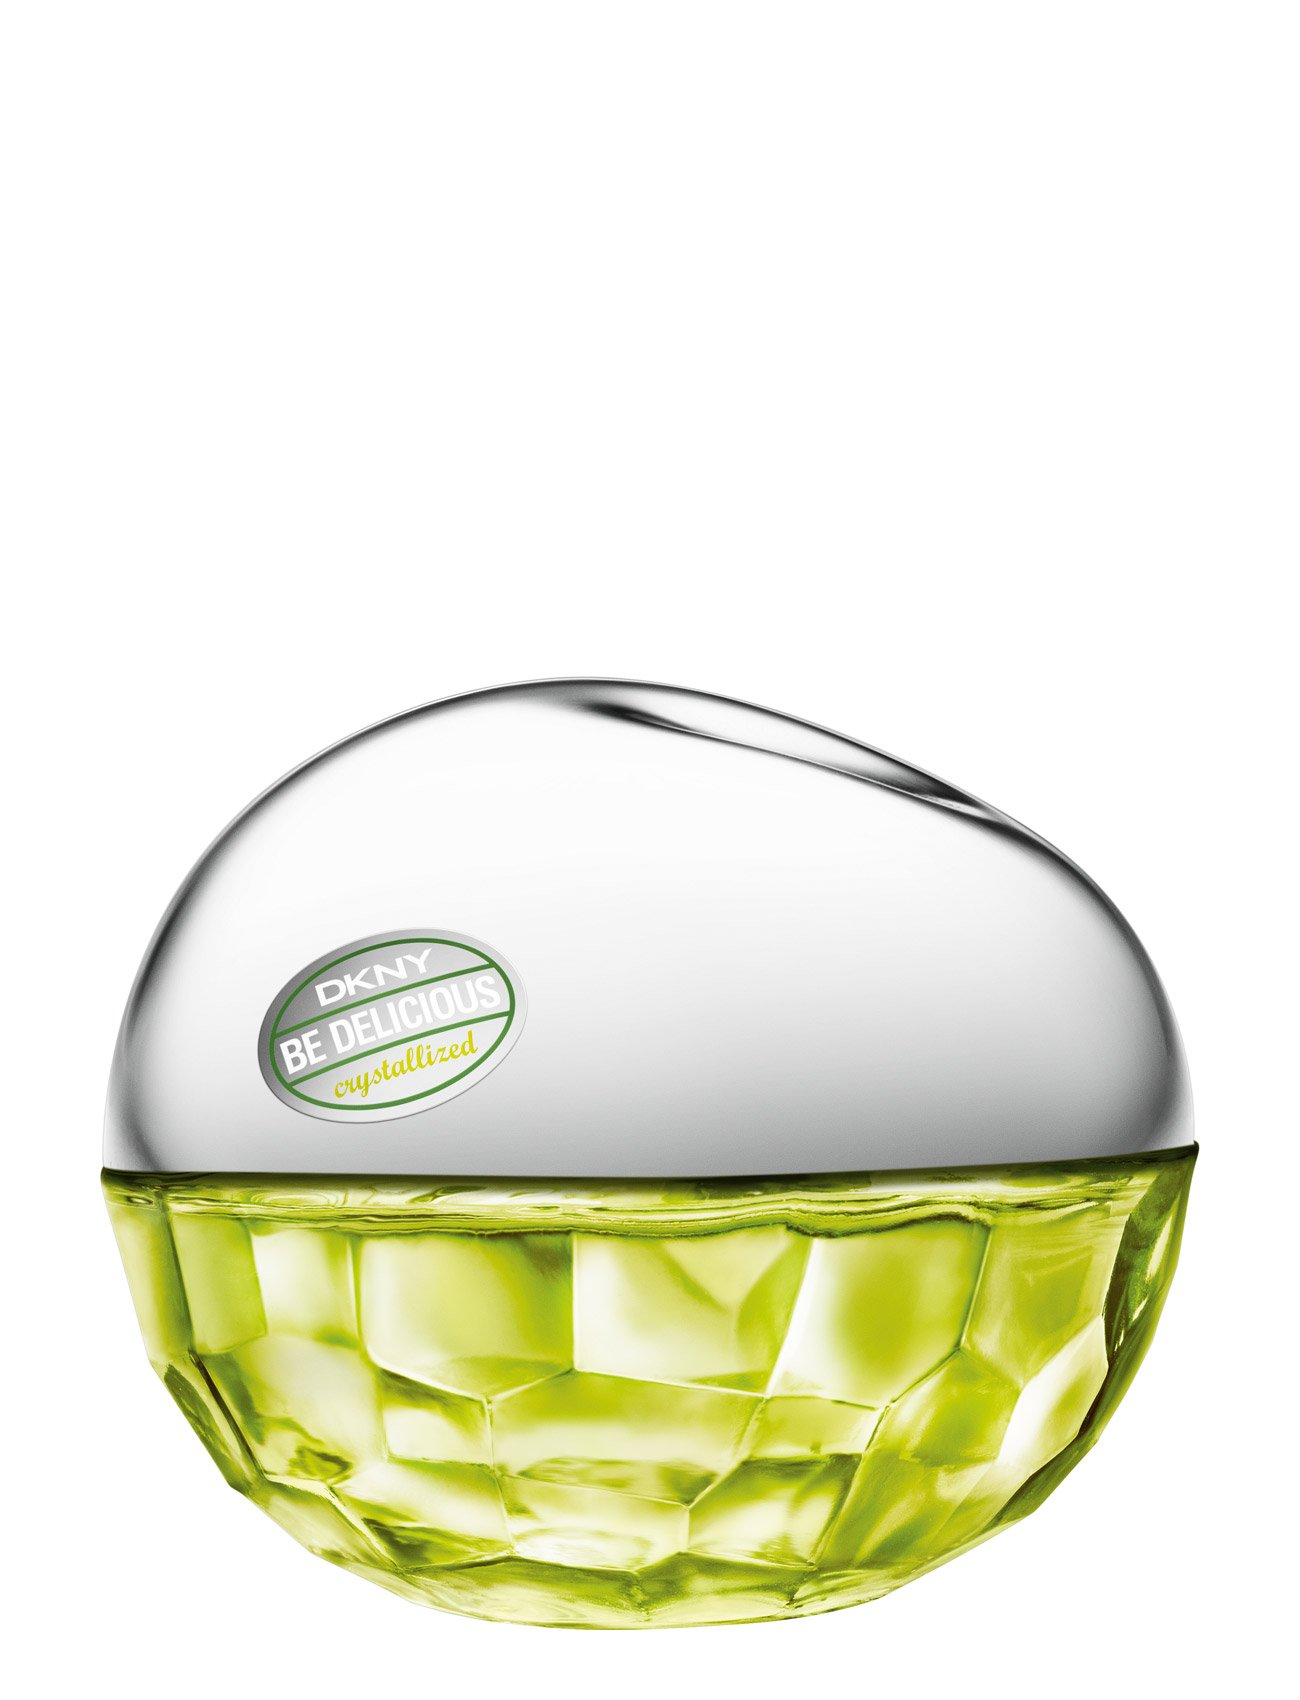 DKNY - Crystalized Apple Be Delicious EDP 50 ml